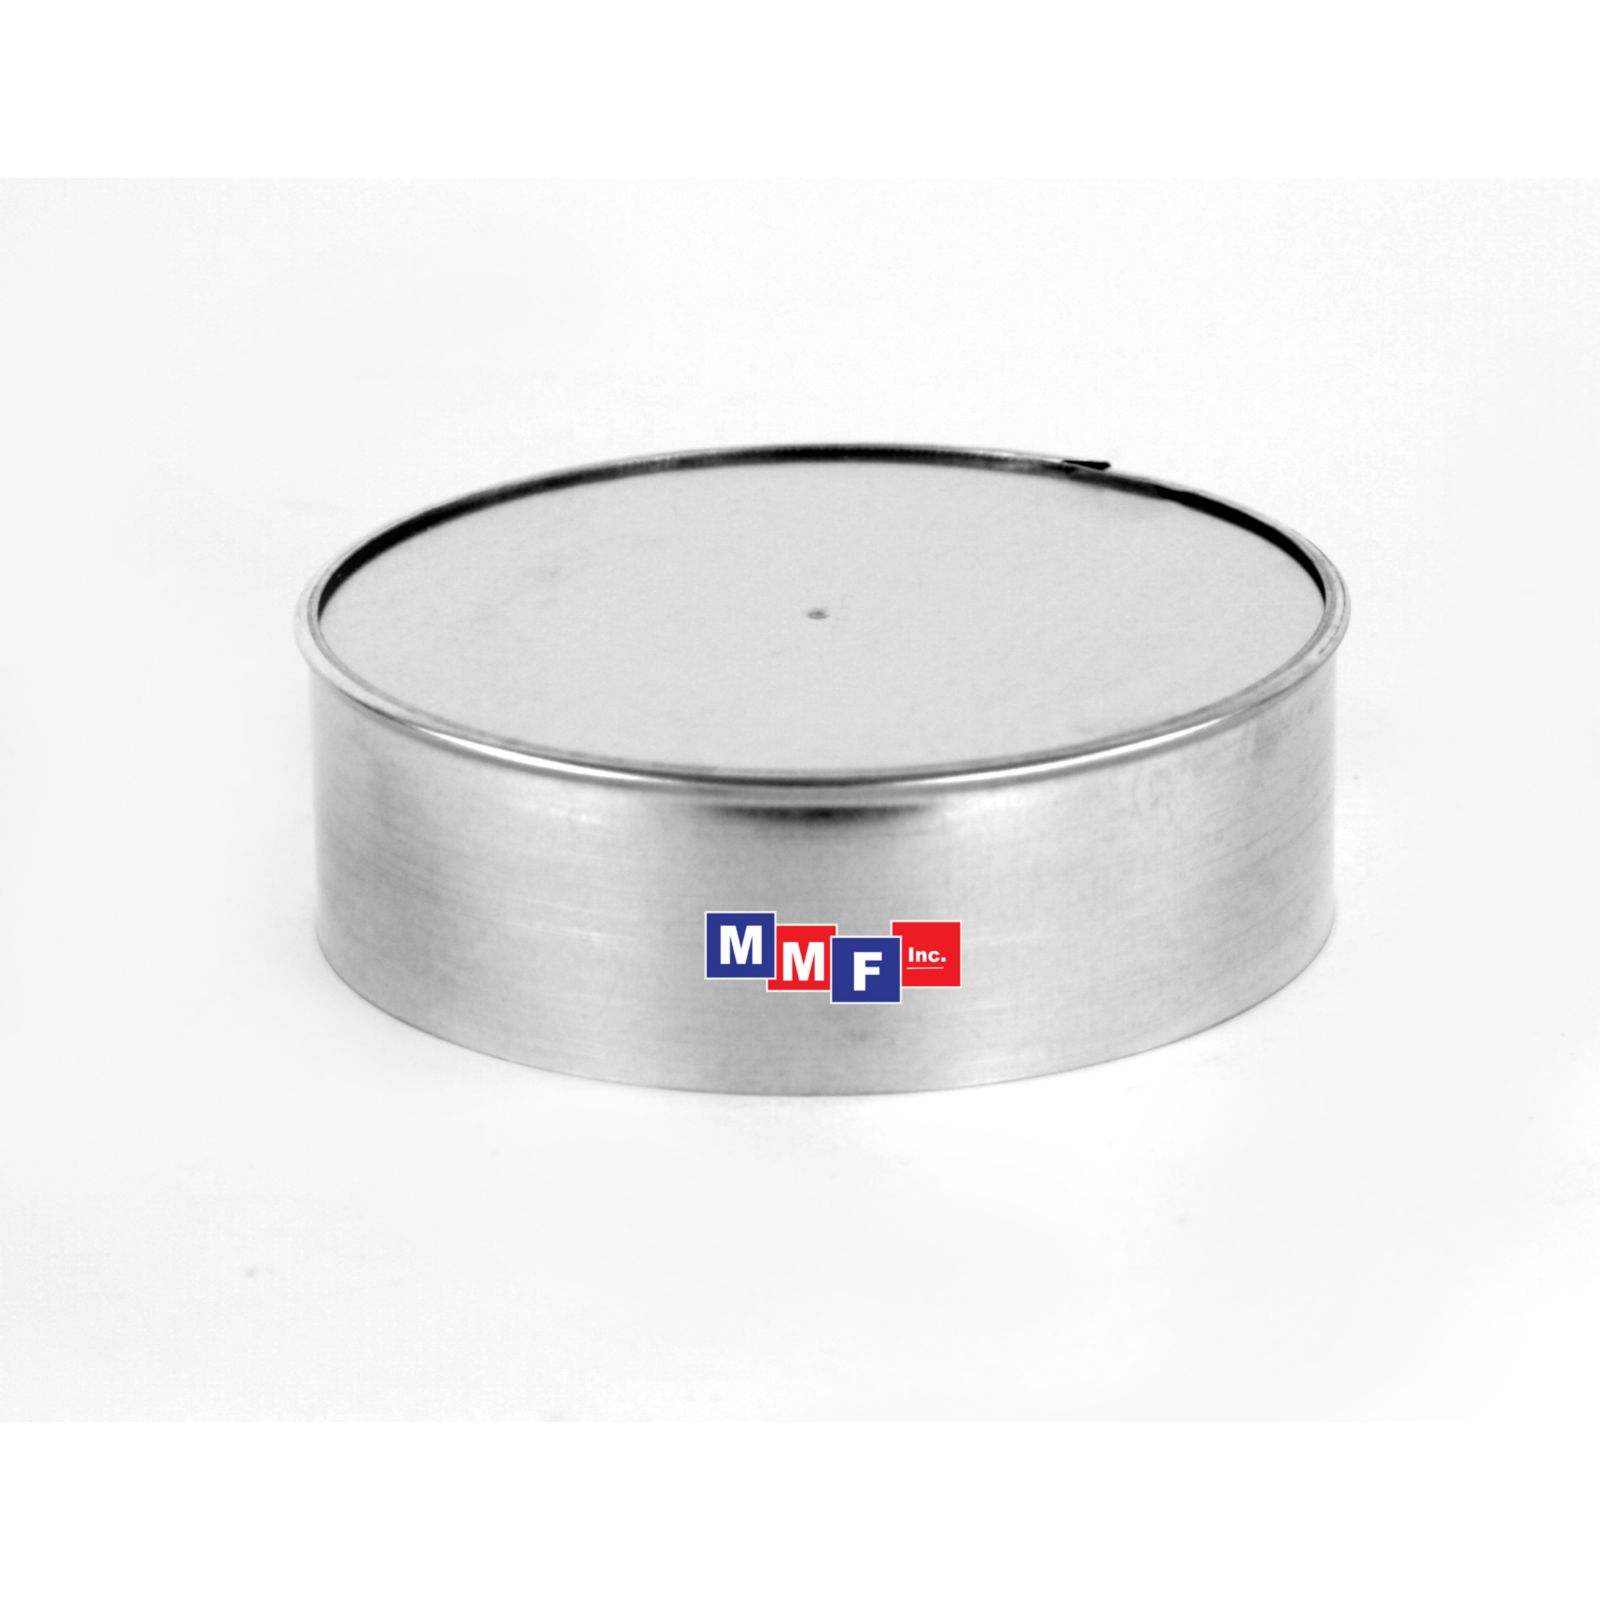 "Modular Metal ECI10 - End Cap - 26 Gauge - 2"" High 10"" Round - Galvanized"